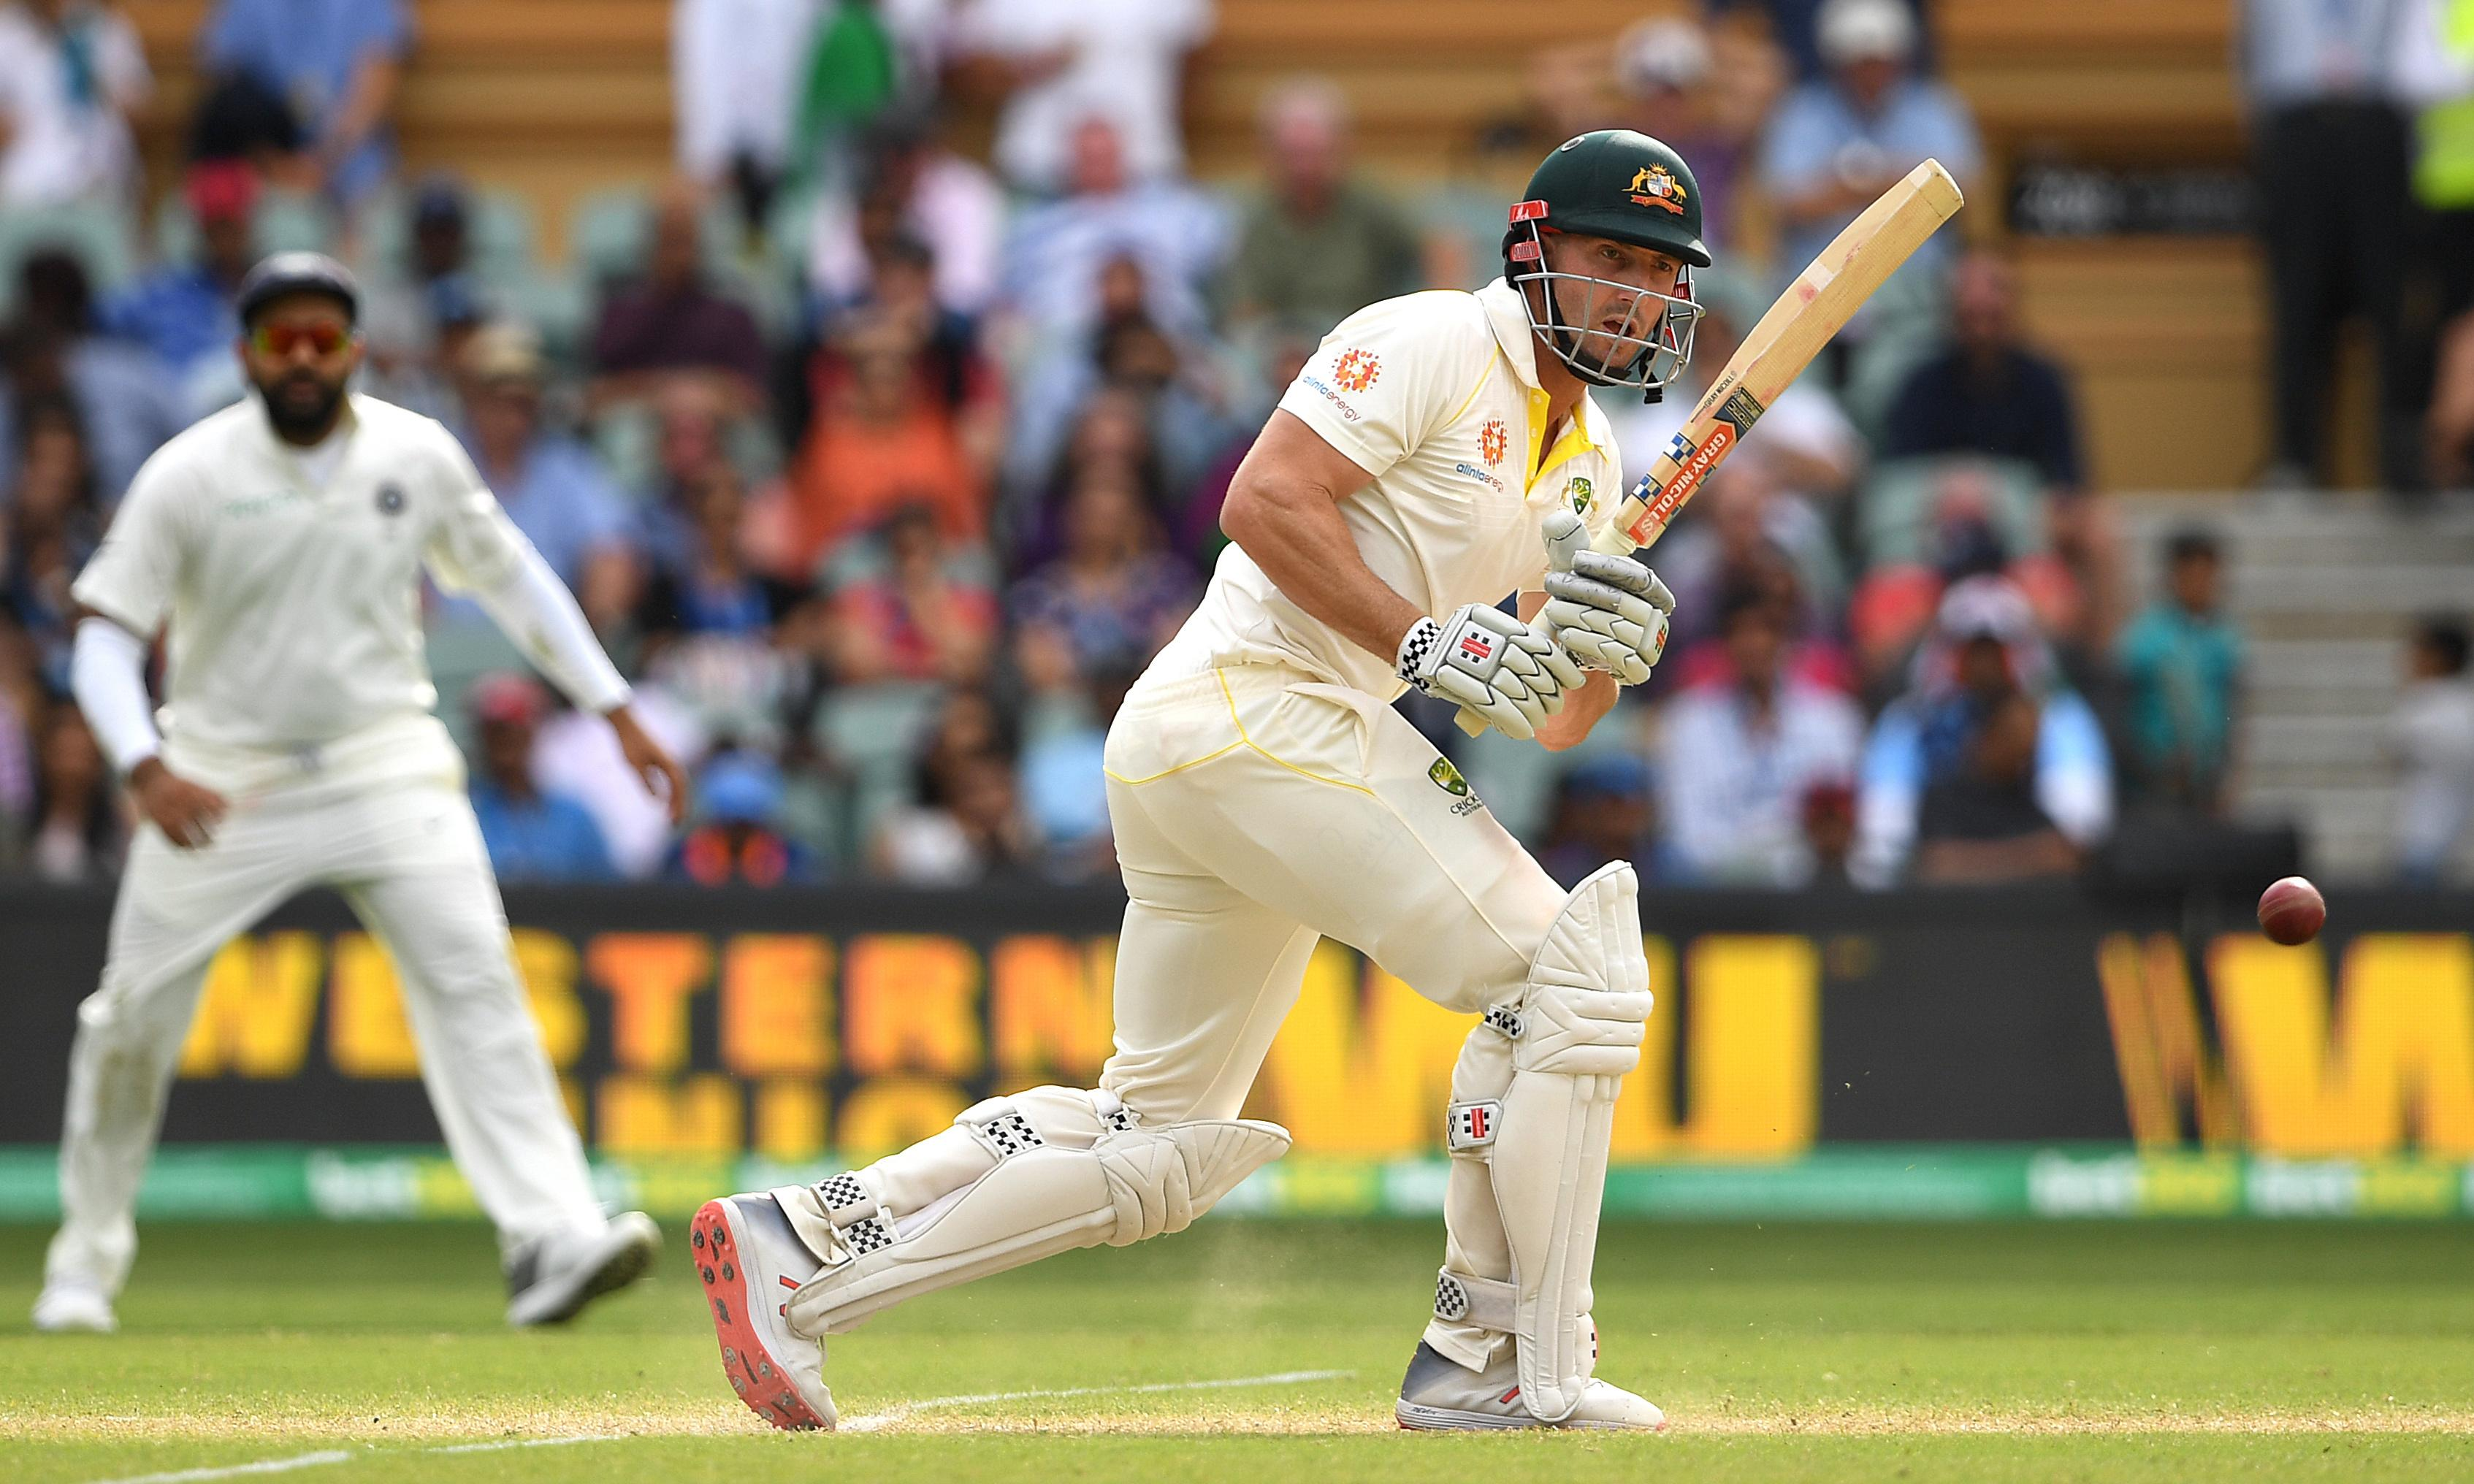 Australia face near impossible first Test task as hopes rest on Marsh